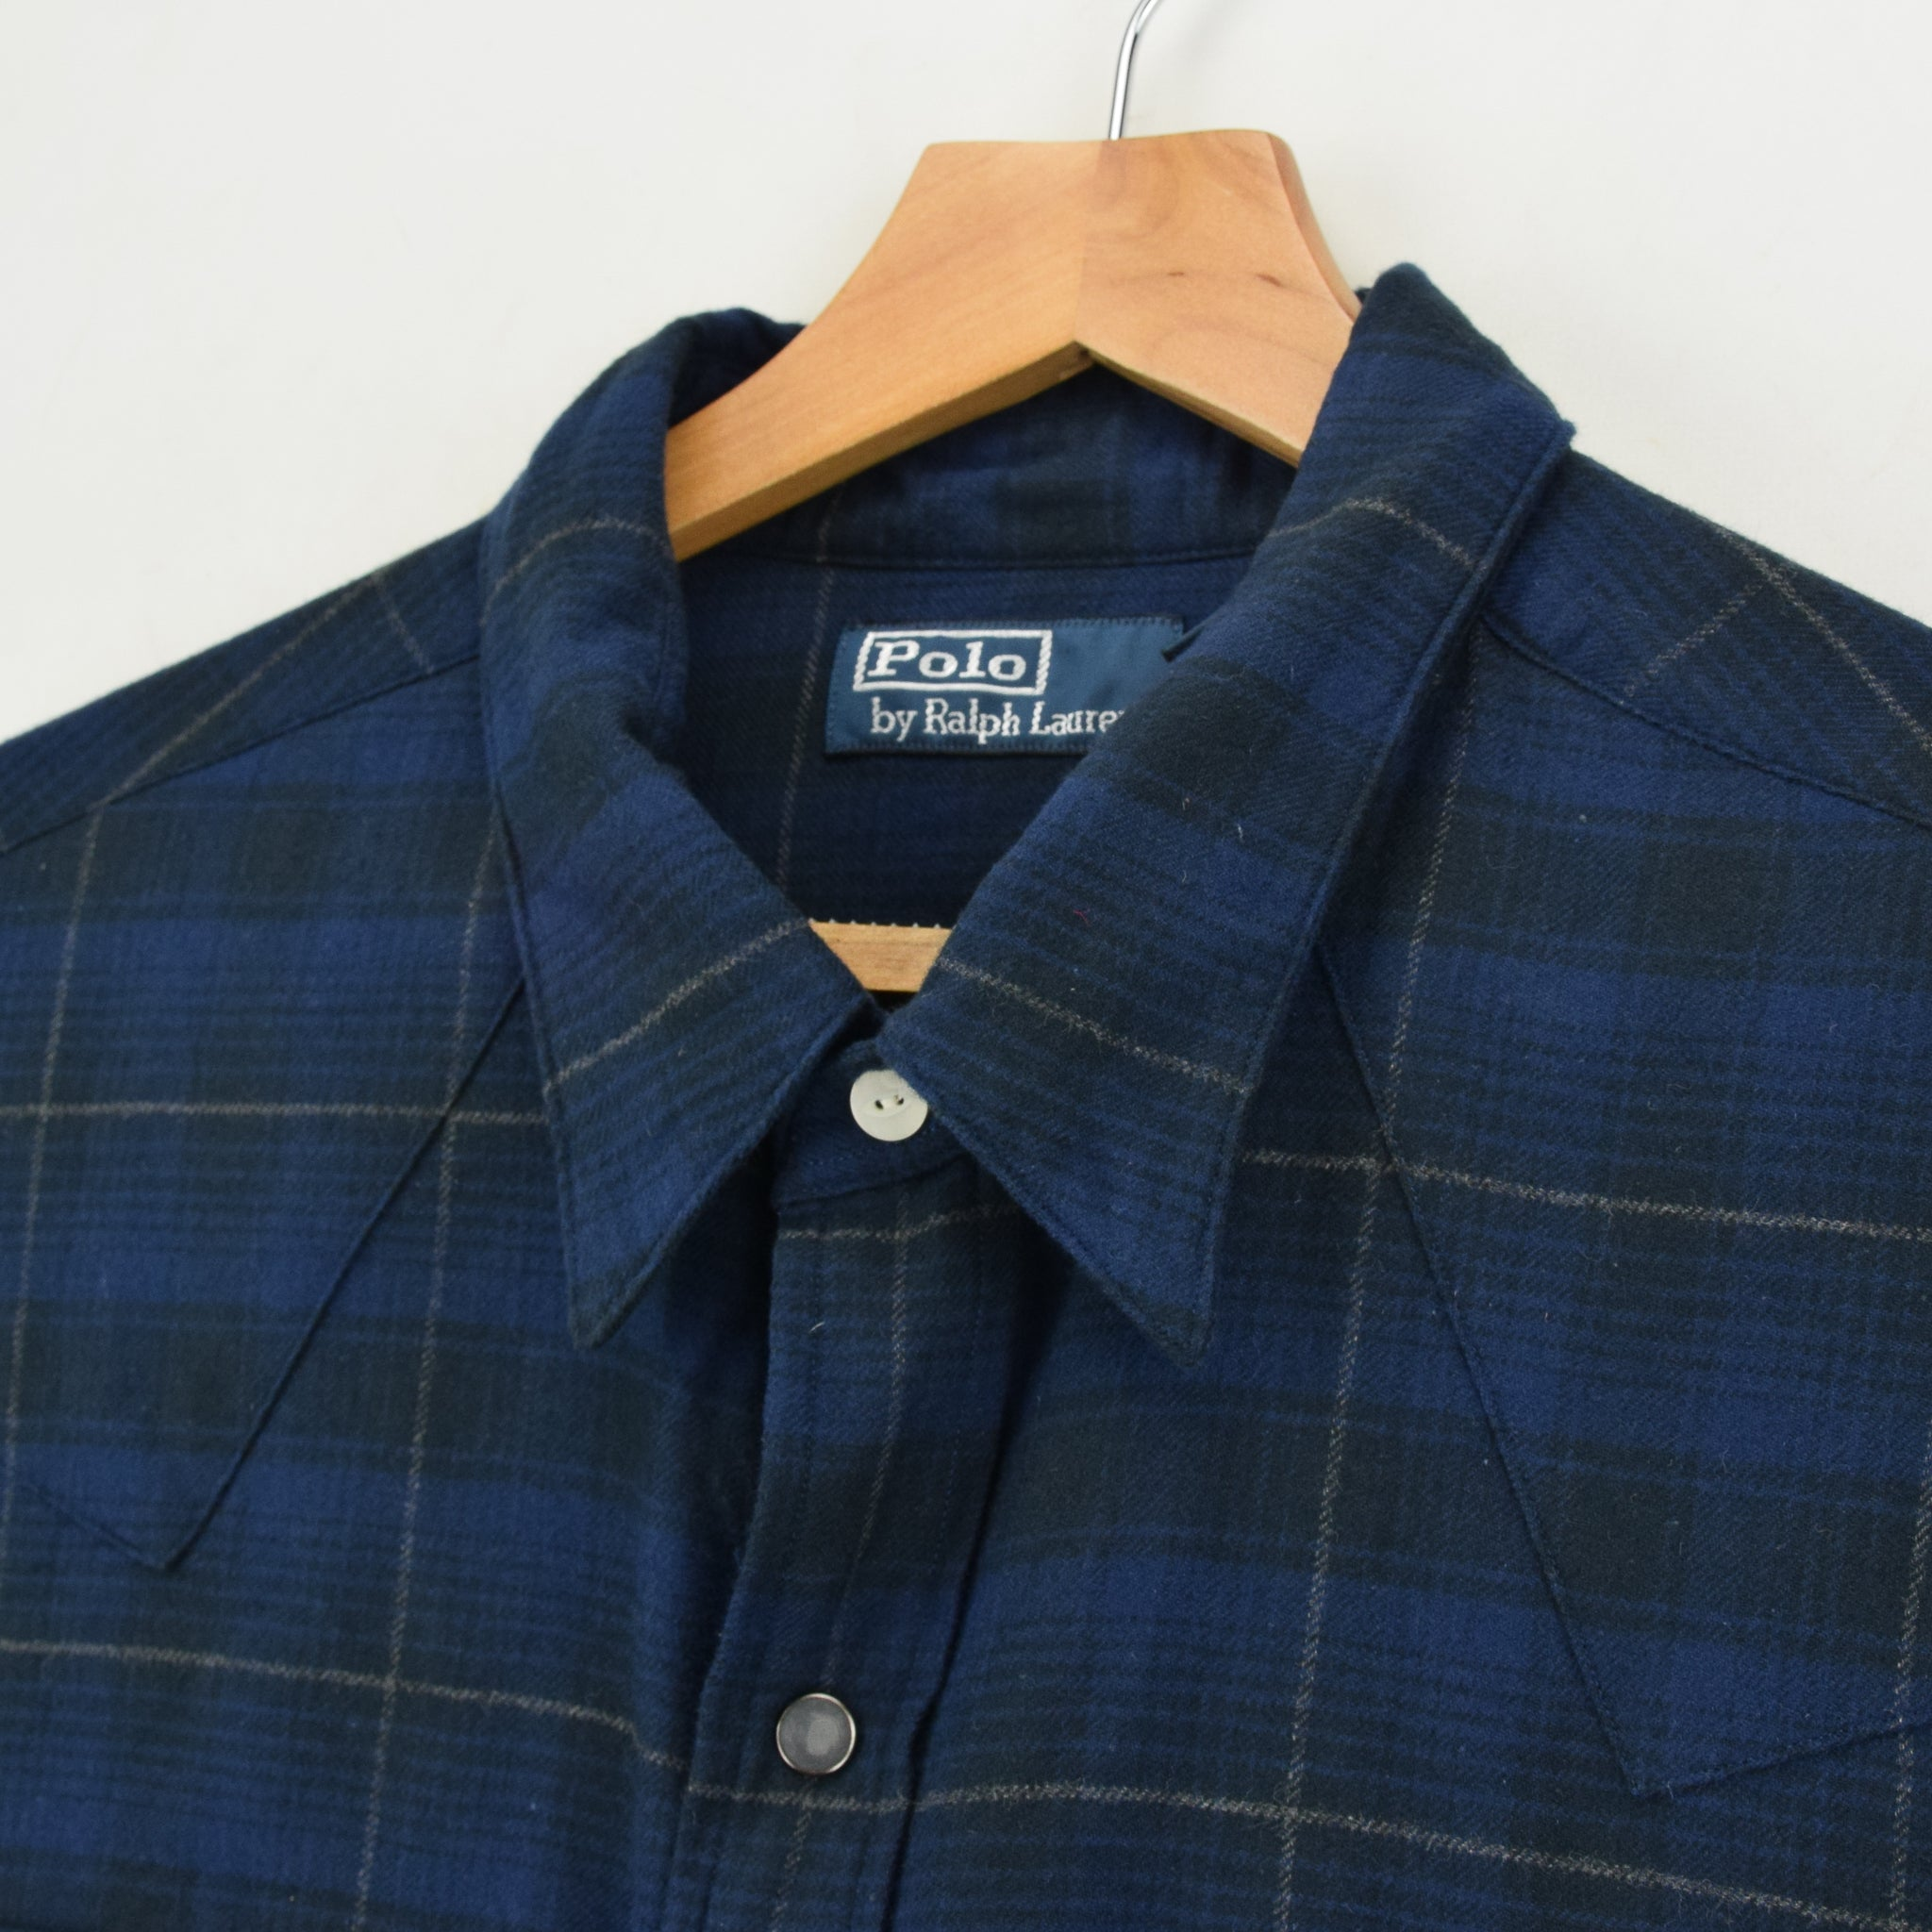 Ralph Lauren Polo Blue Check Cotton Western Style Shirt Long Sleeve XXL collar